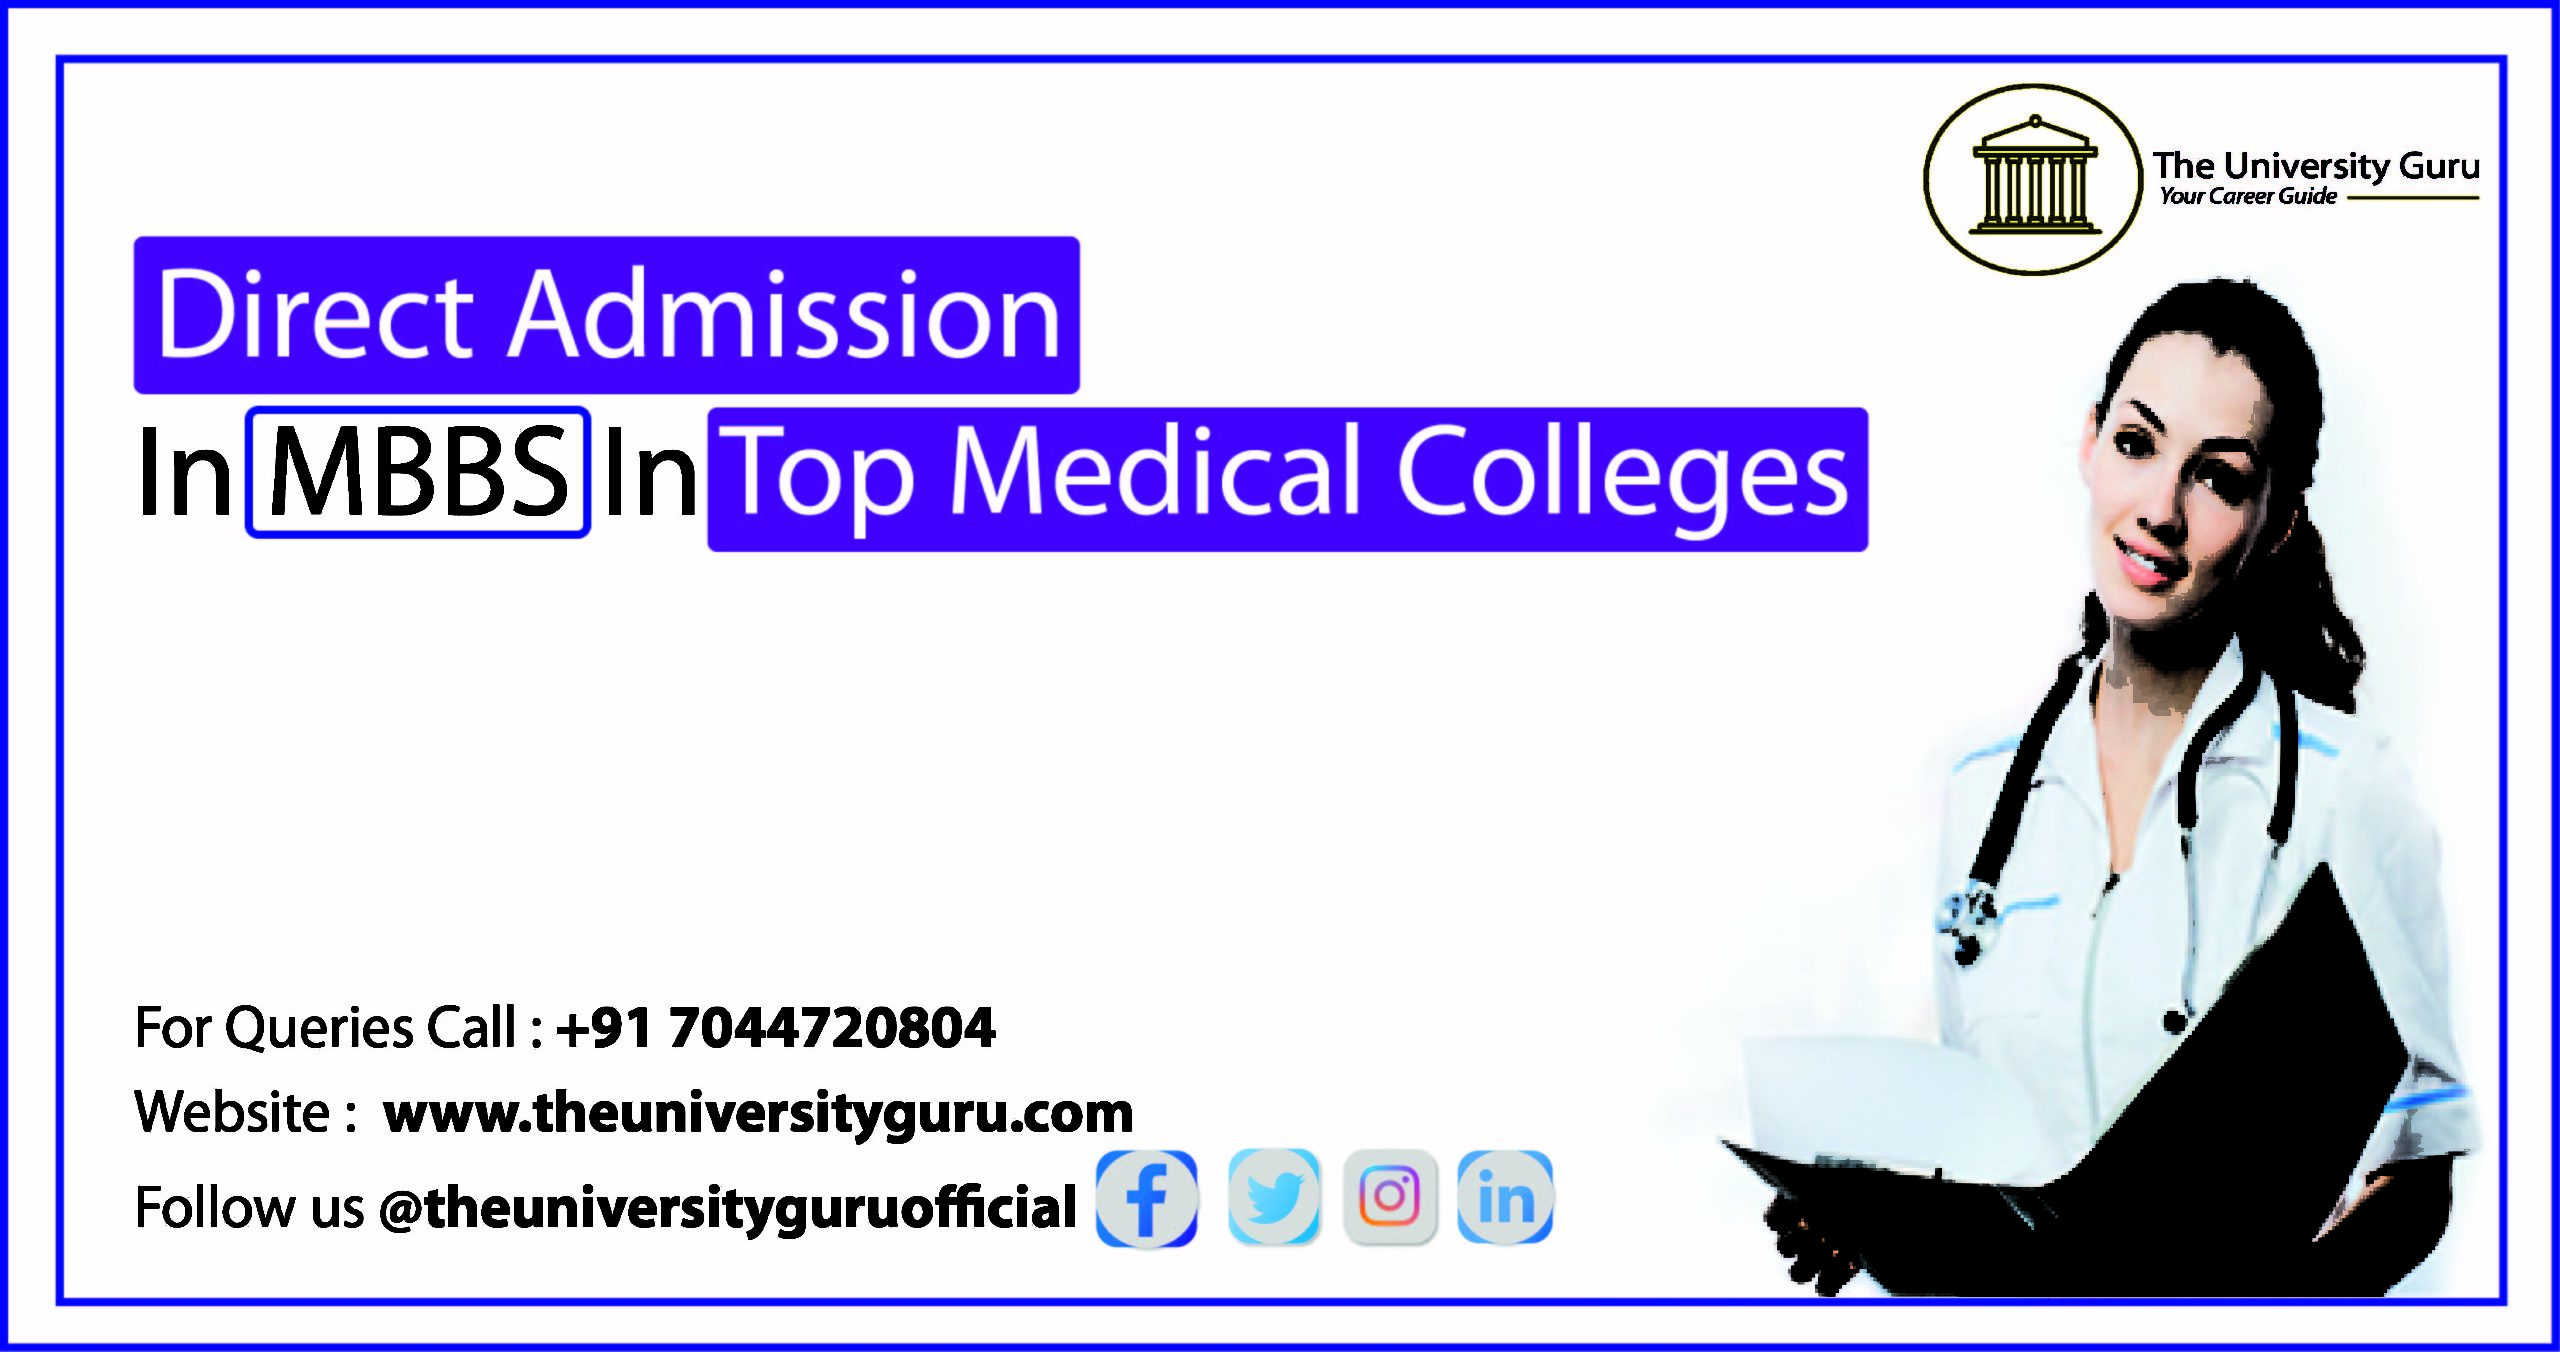 About Admission In Top Medical College